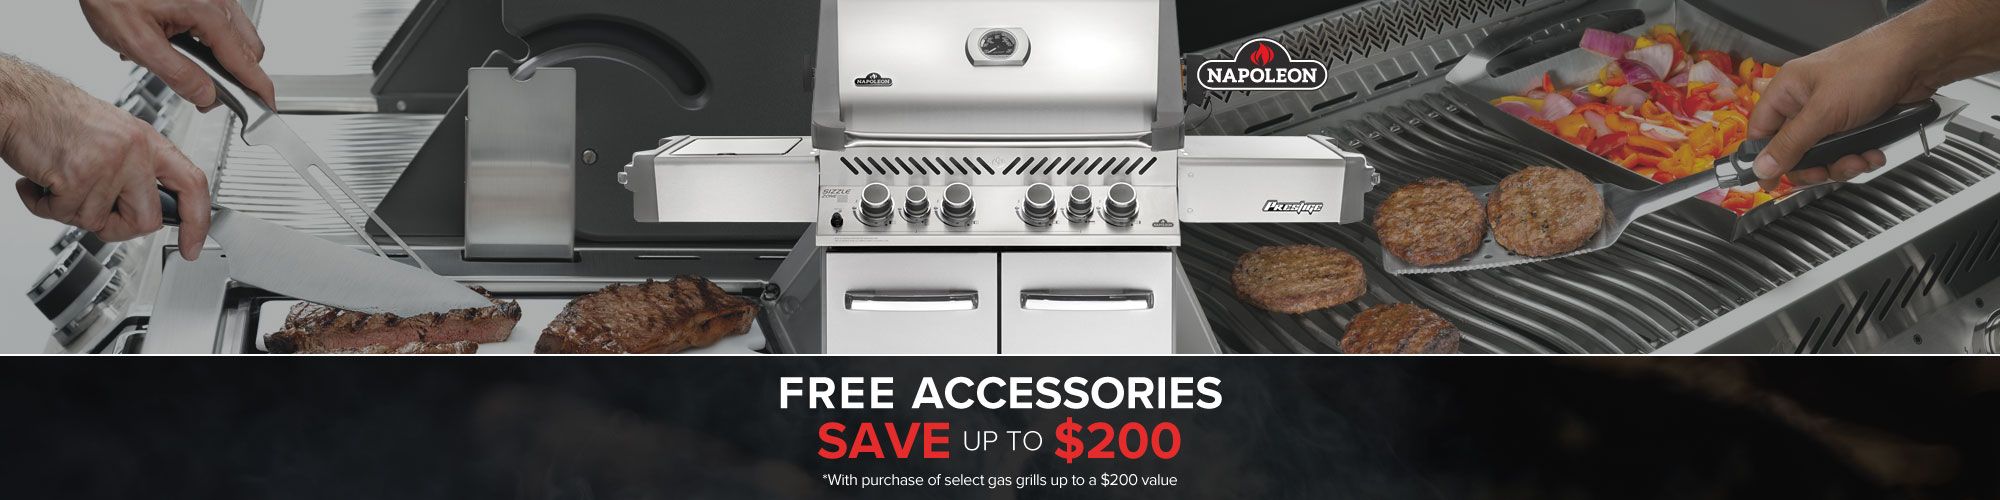 Shop Napoleon for your gas grills, grilling tools, grilling accessories & grill covers at Sun & Ski.